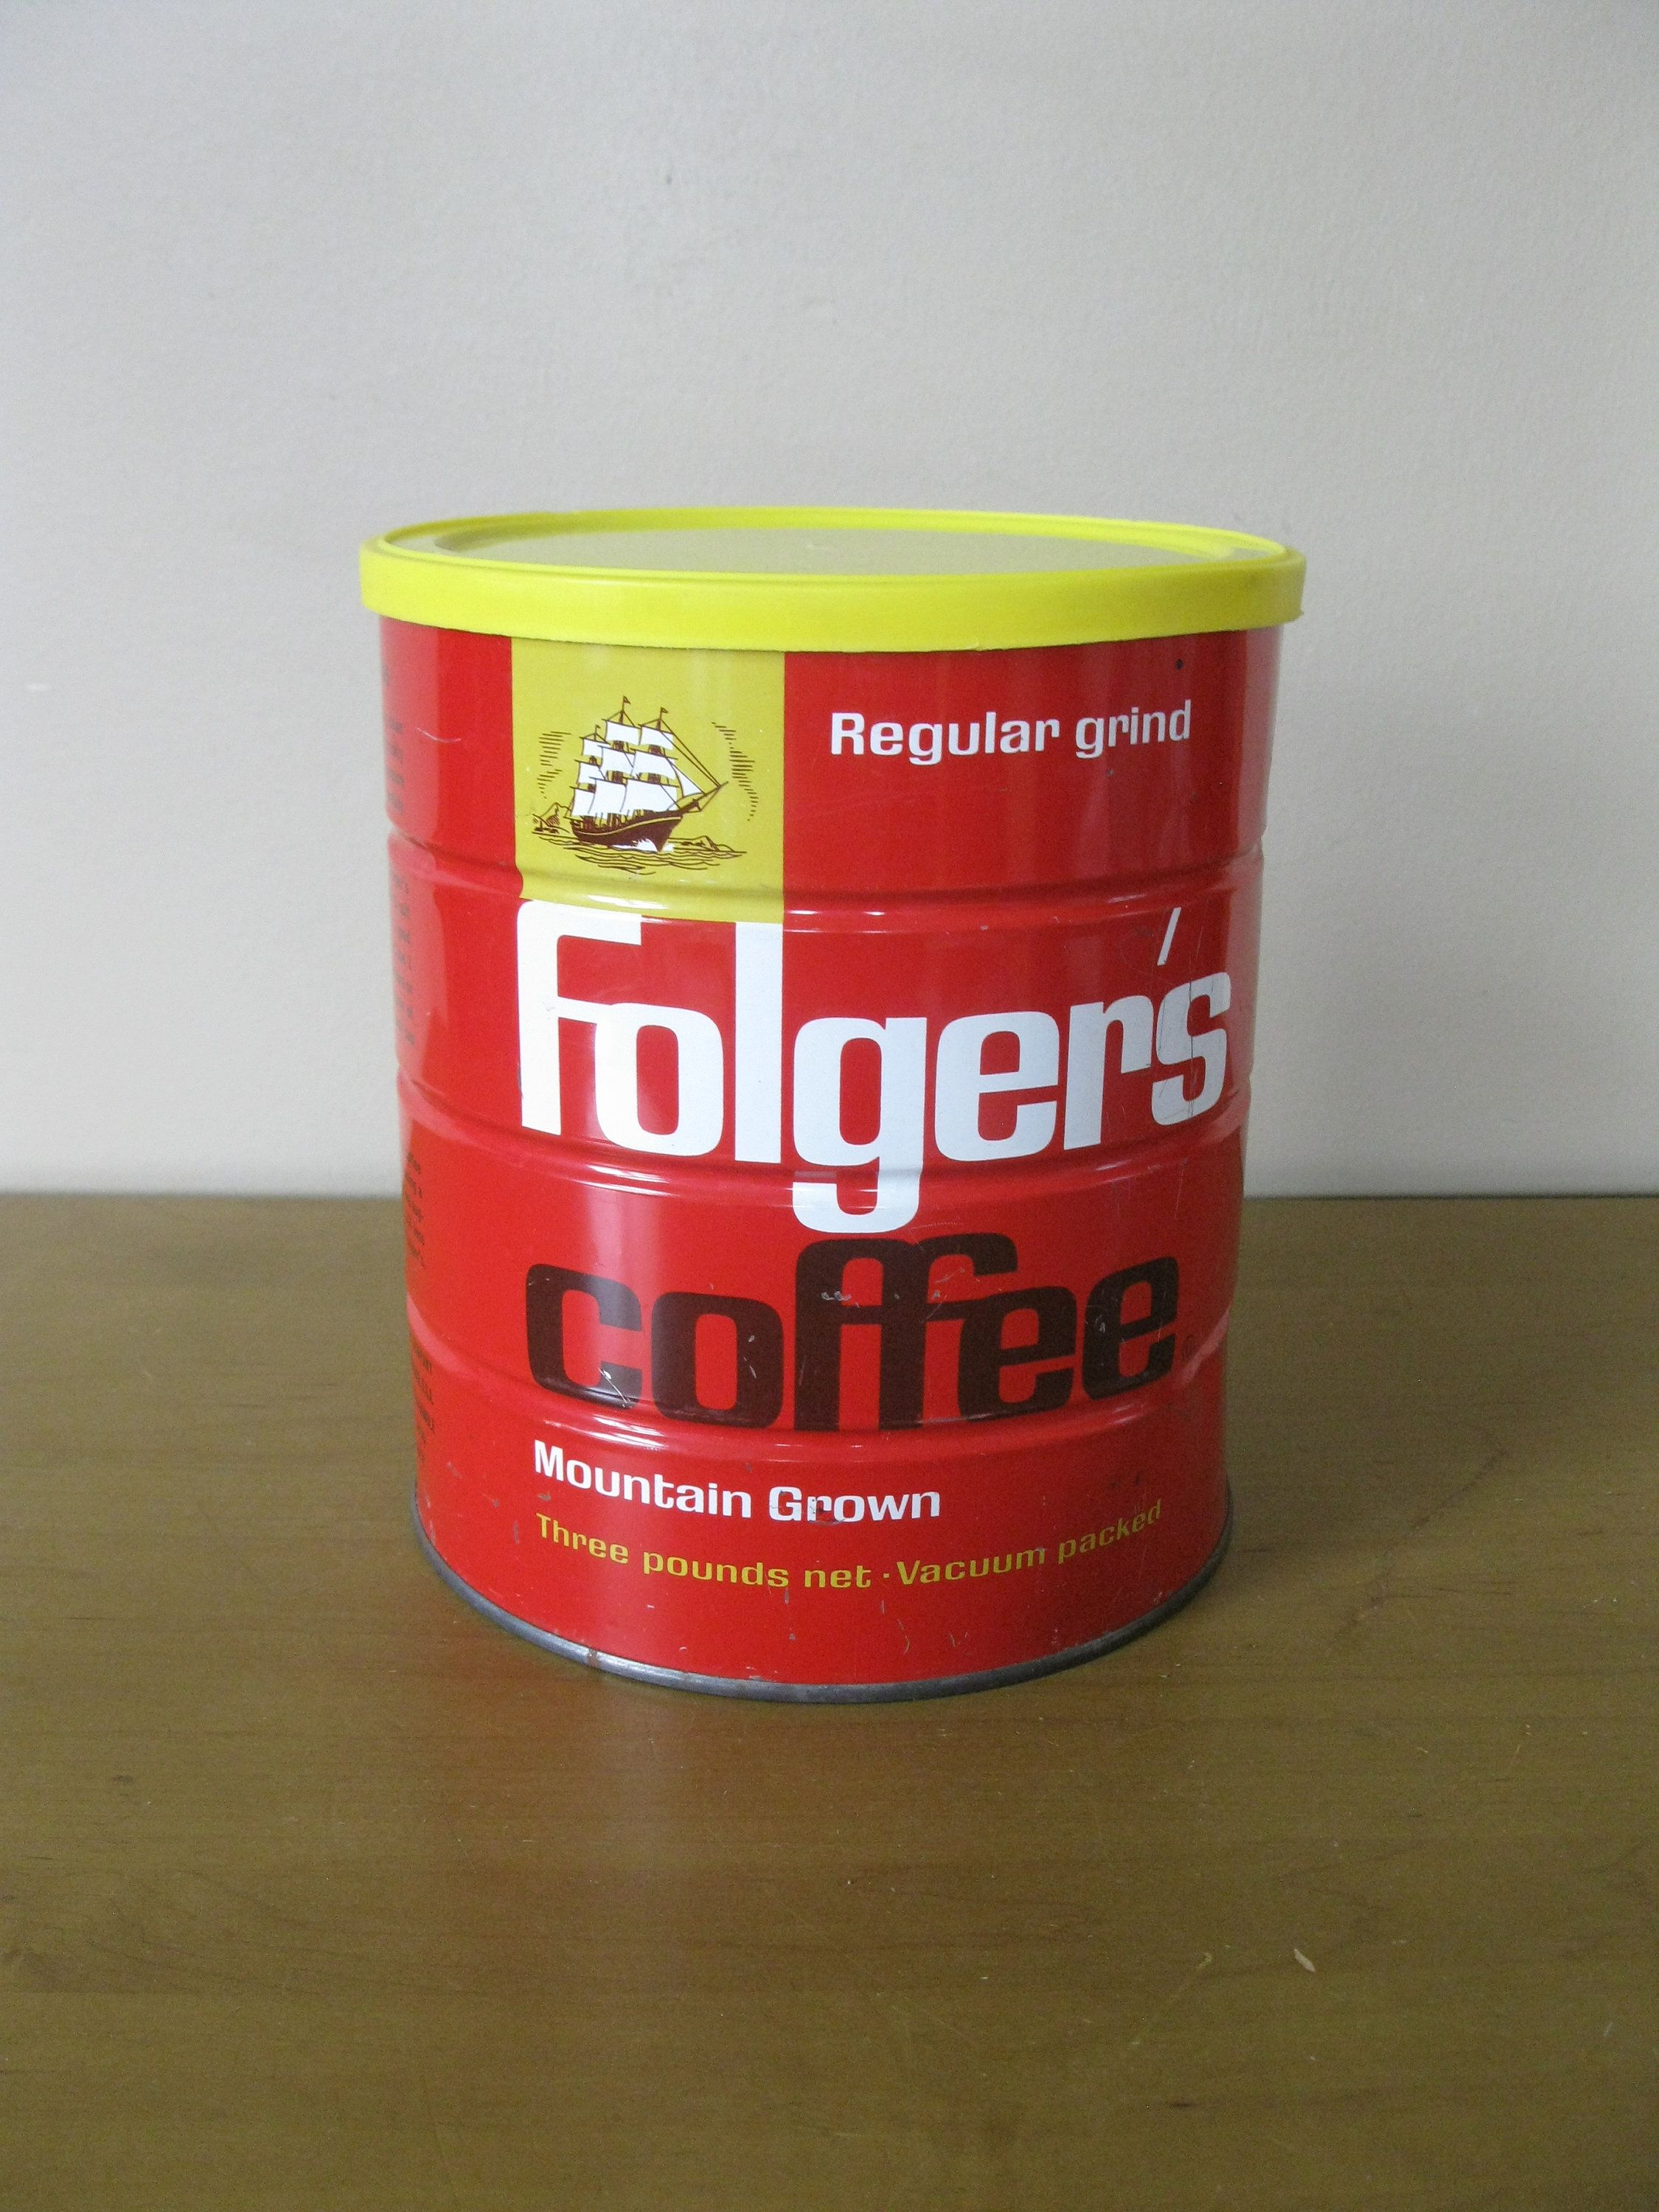 Vintage 1963 Folgers Coffee Tin 3 Lb Can With Lid Large Regular Grind Planter Succulent Kitchen By